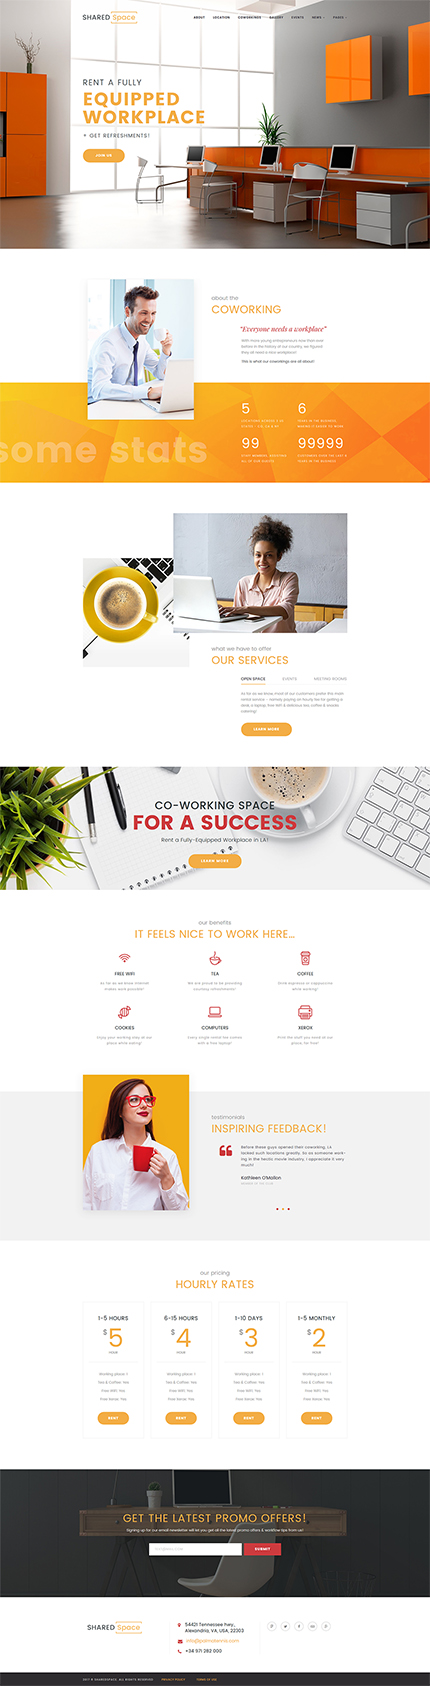 Business Most Popular website inspirations at your coffee break? Browse for more WordPress #templates! // Regular price: $81 // Sources available:.PHP, This theme is widgetized #Business #Most Popular #WordPress